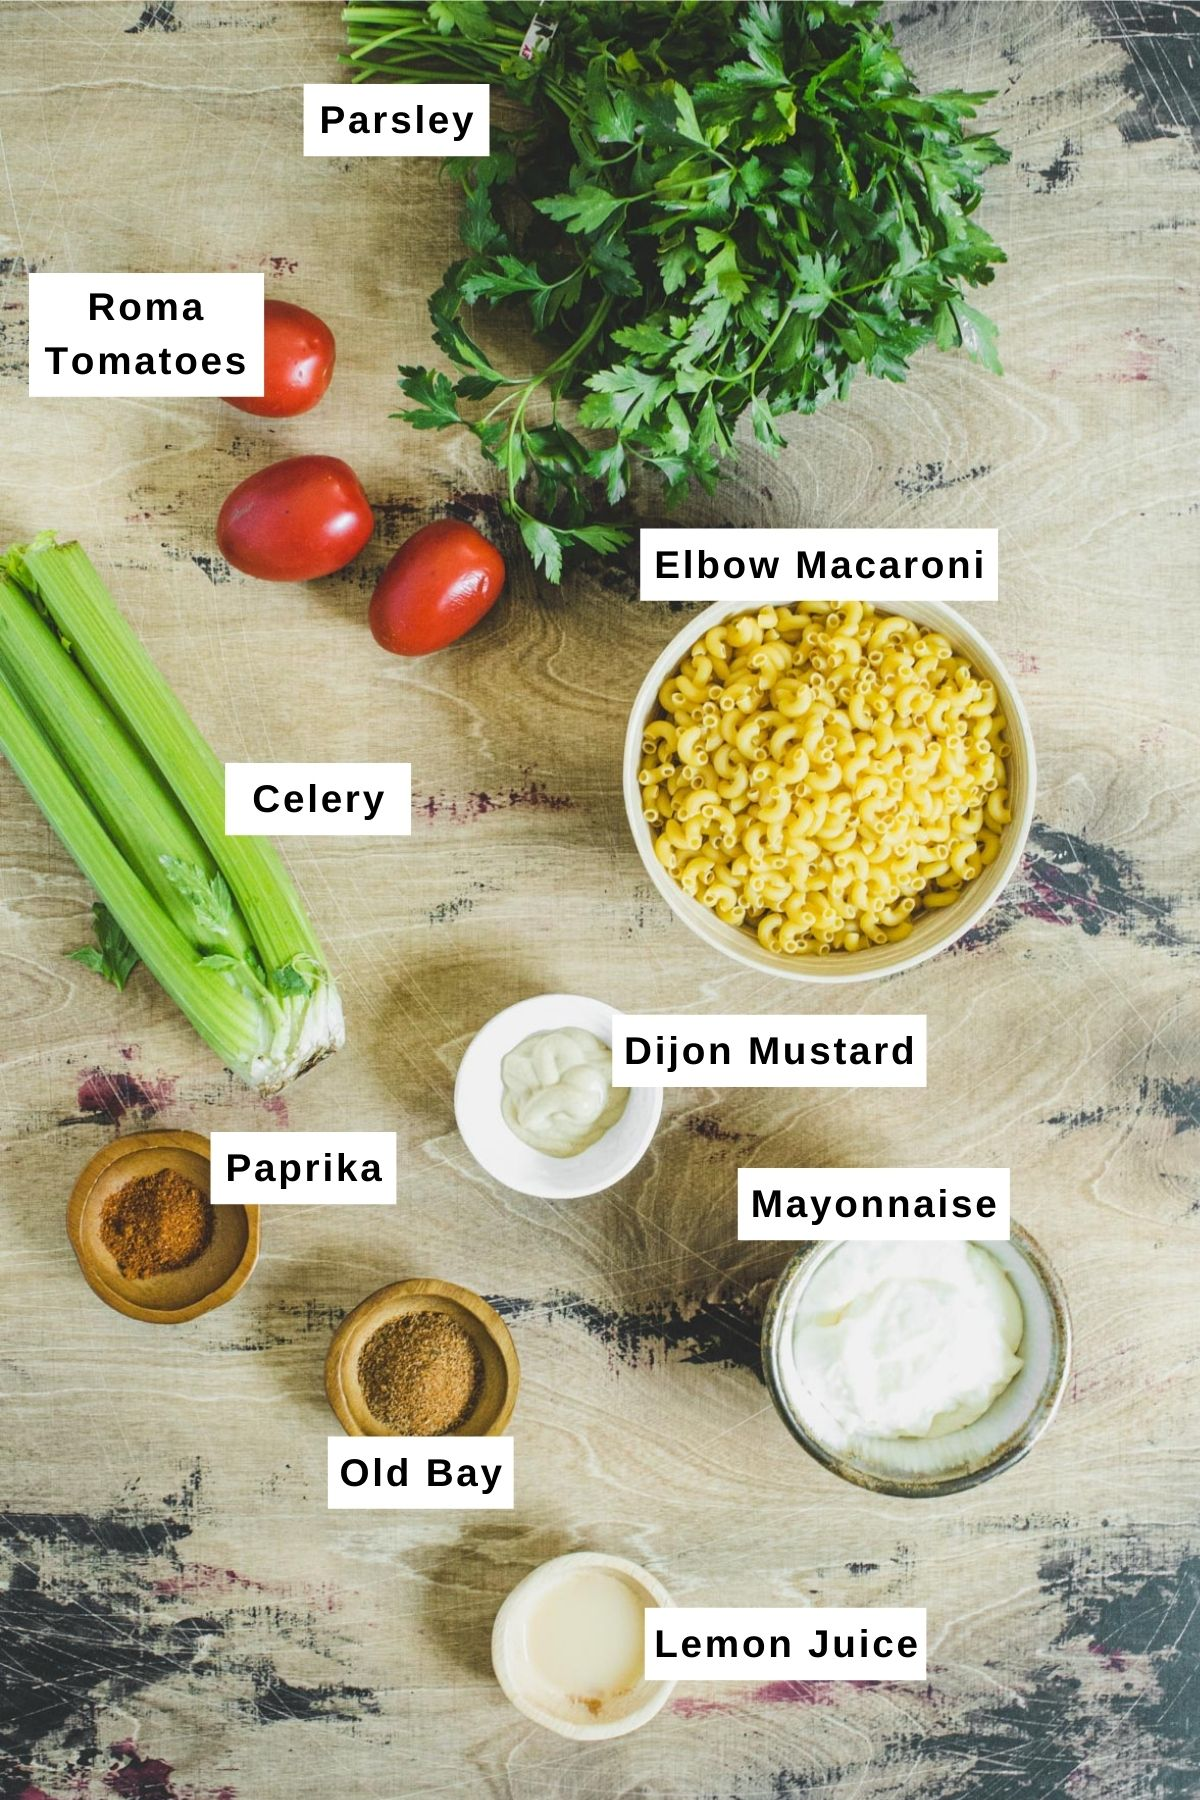 Southern macaroni salad ingredients laid out on table.